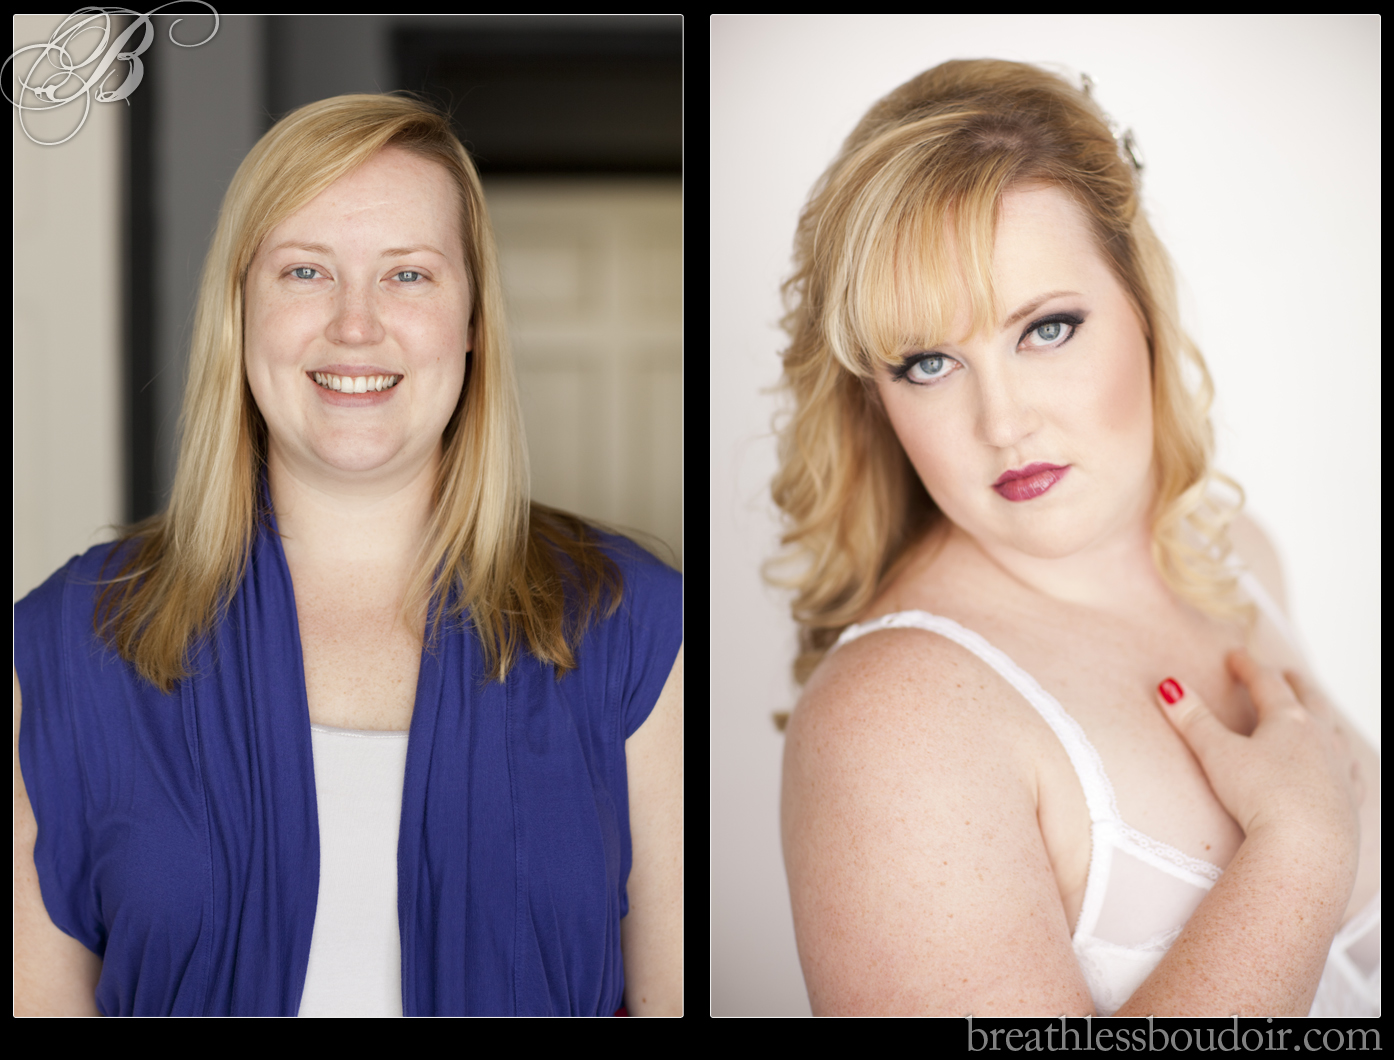 Before and after makeover ©2013 Breathless Boudoir